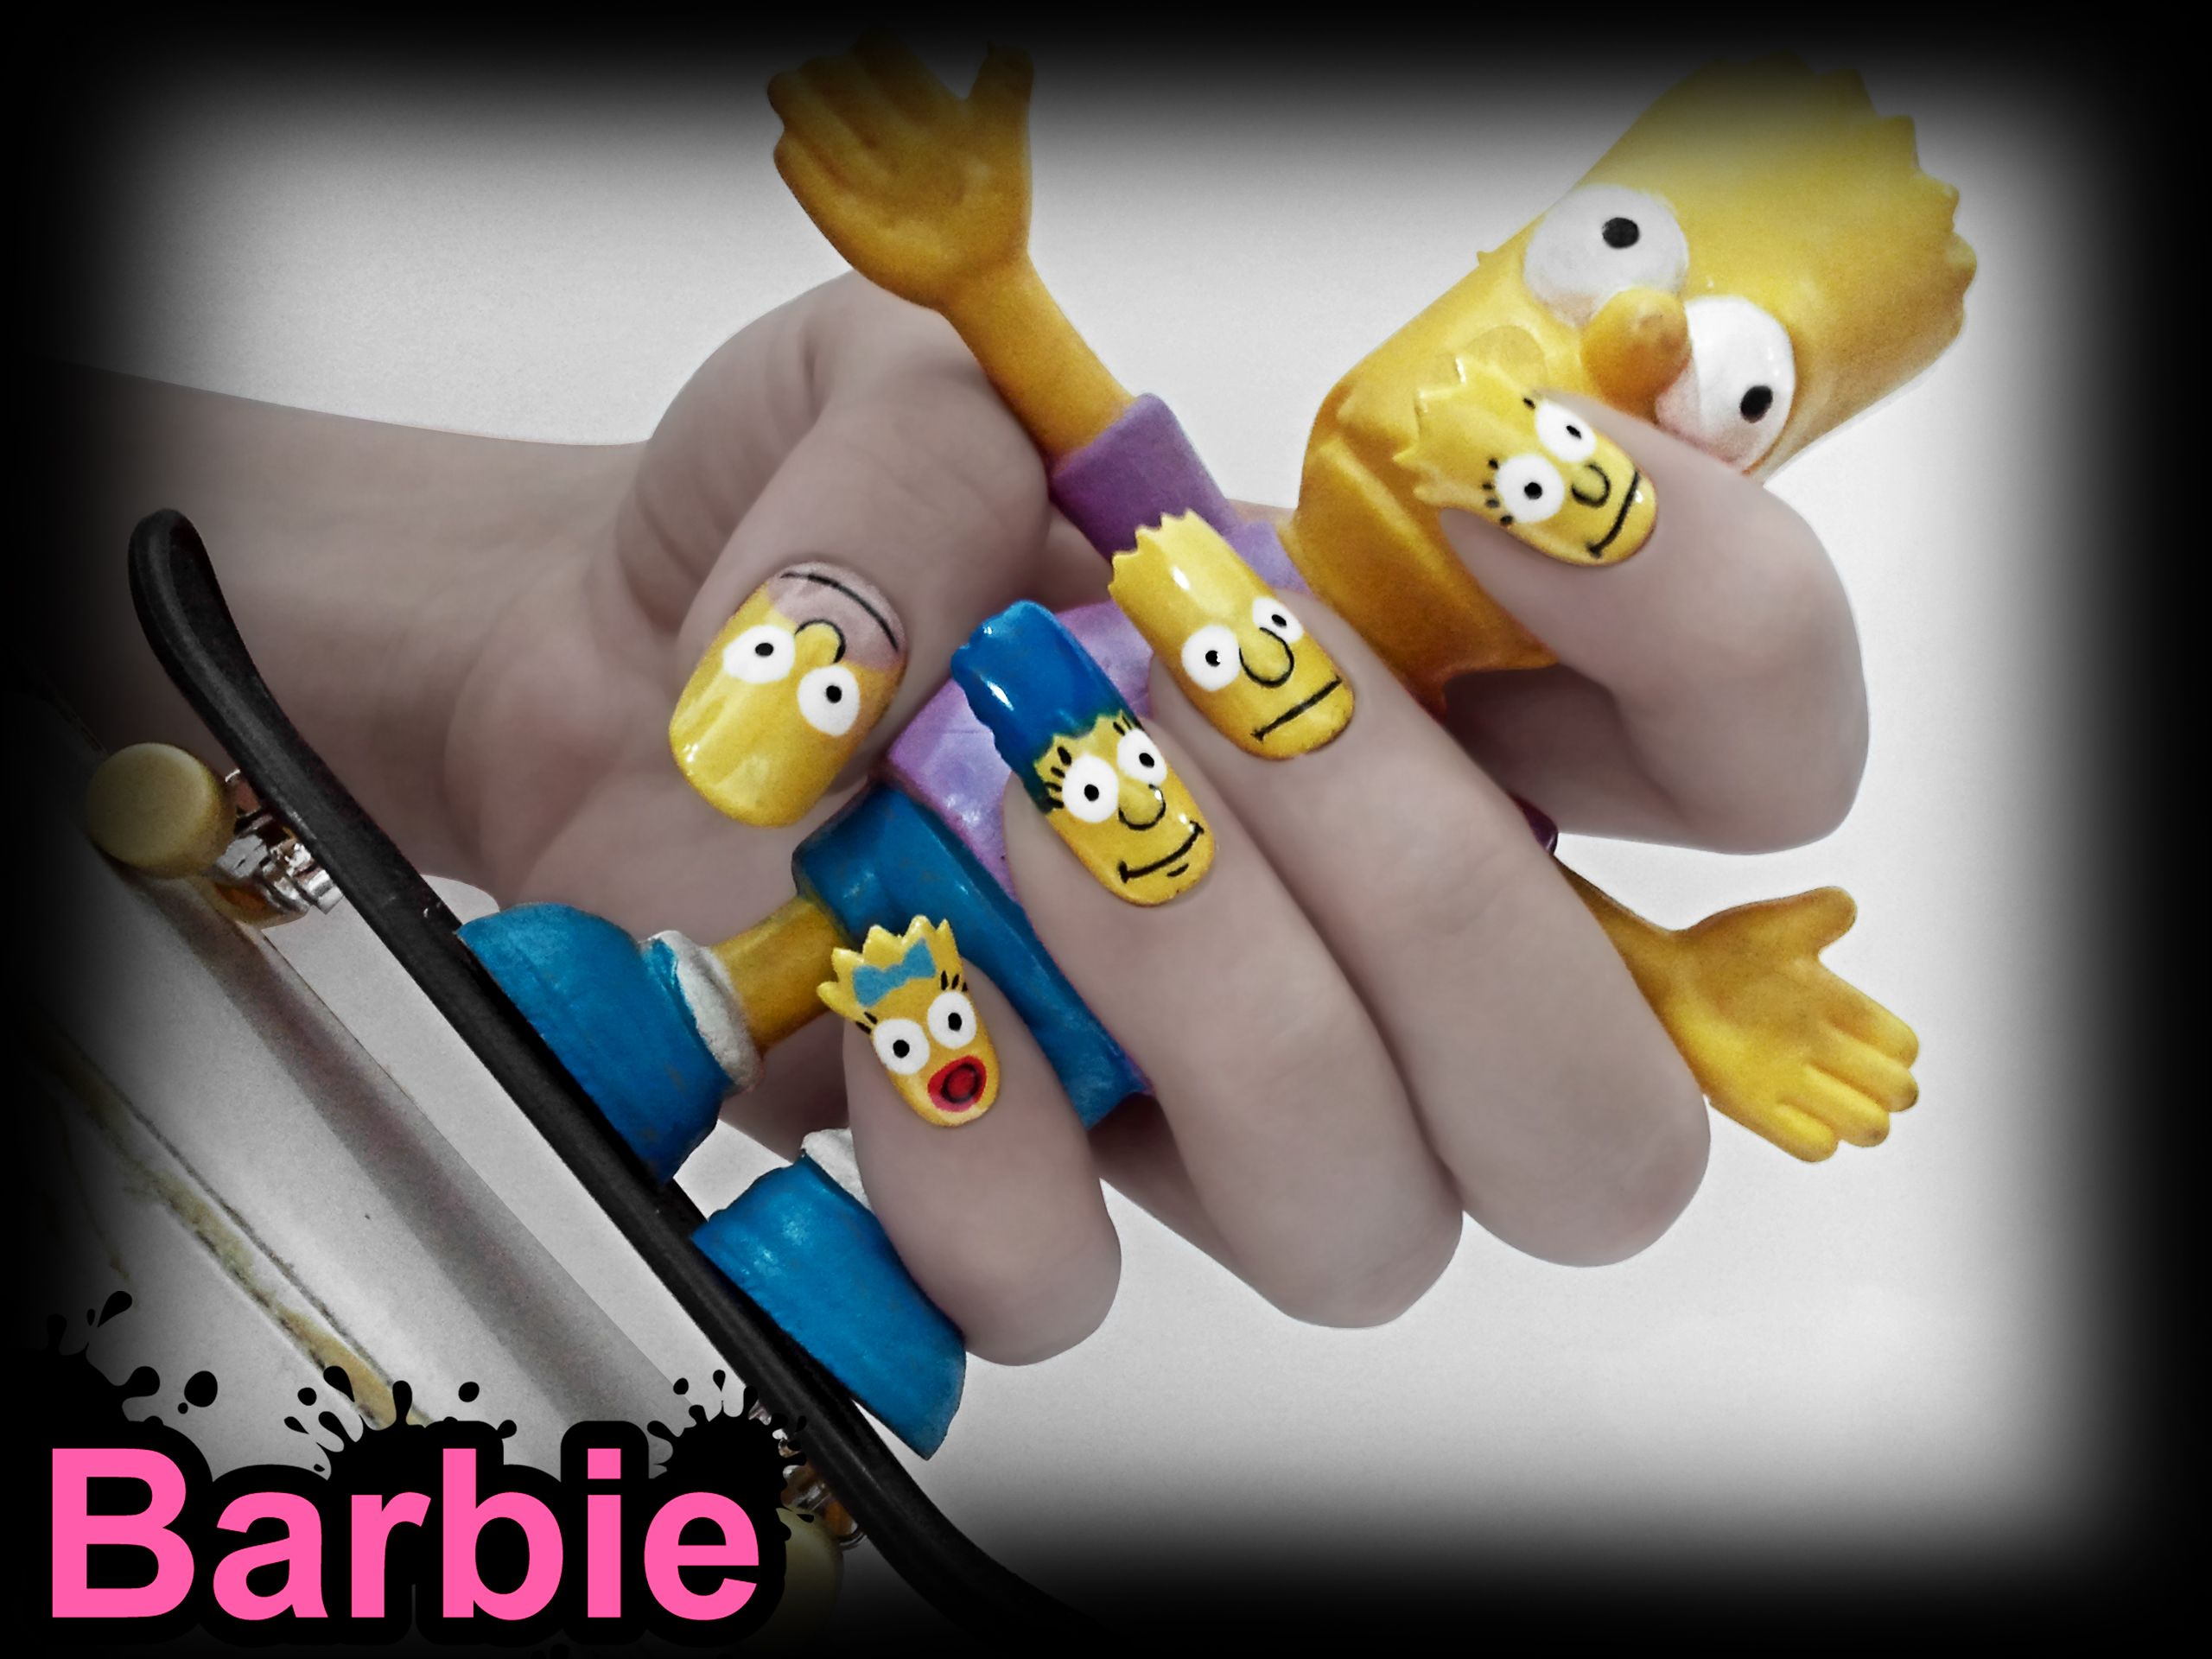 The Simpsons Nails - Nail Design in Simpsons shape, adult animated ...